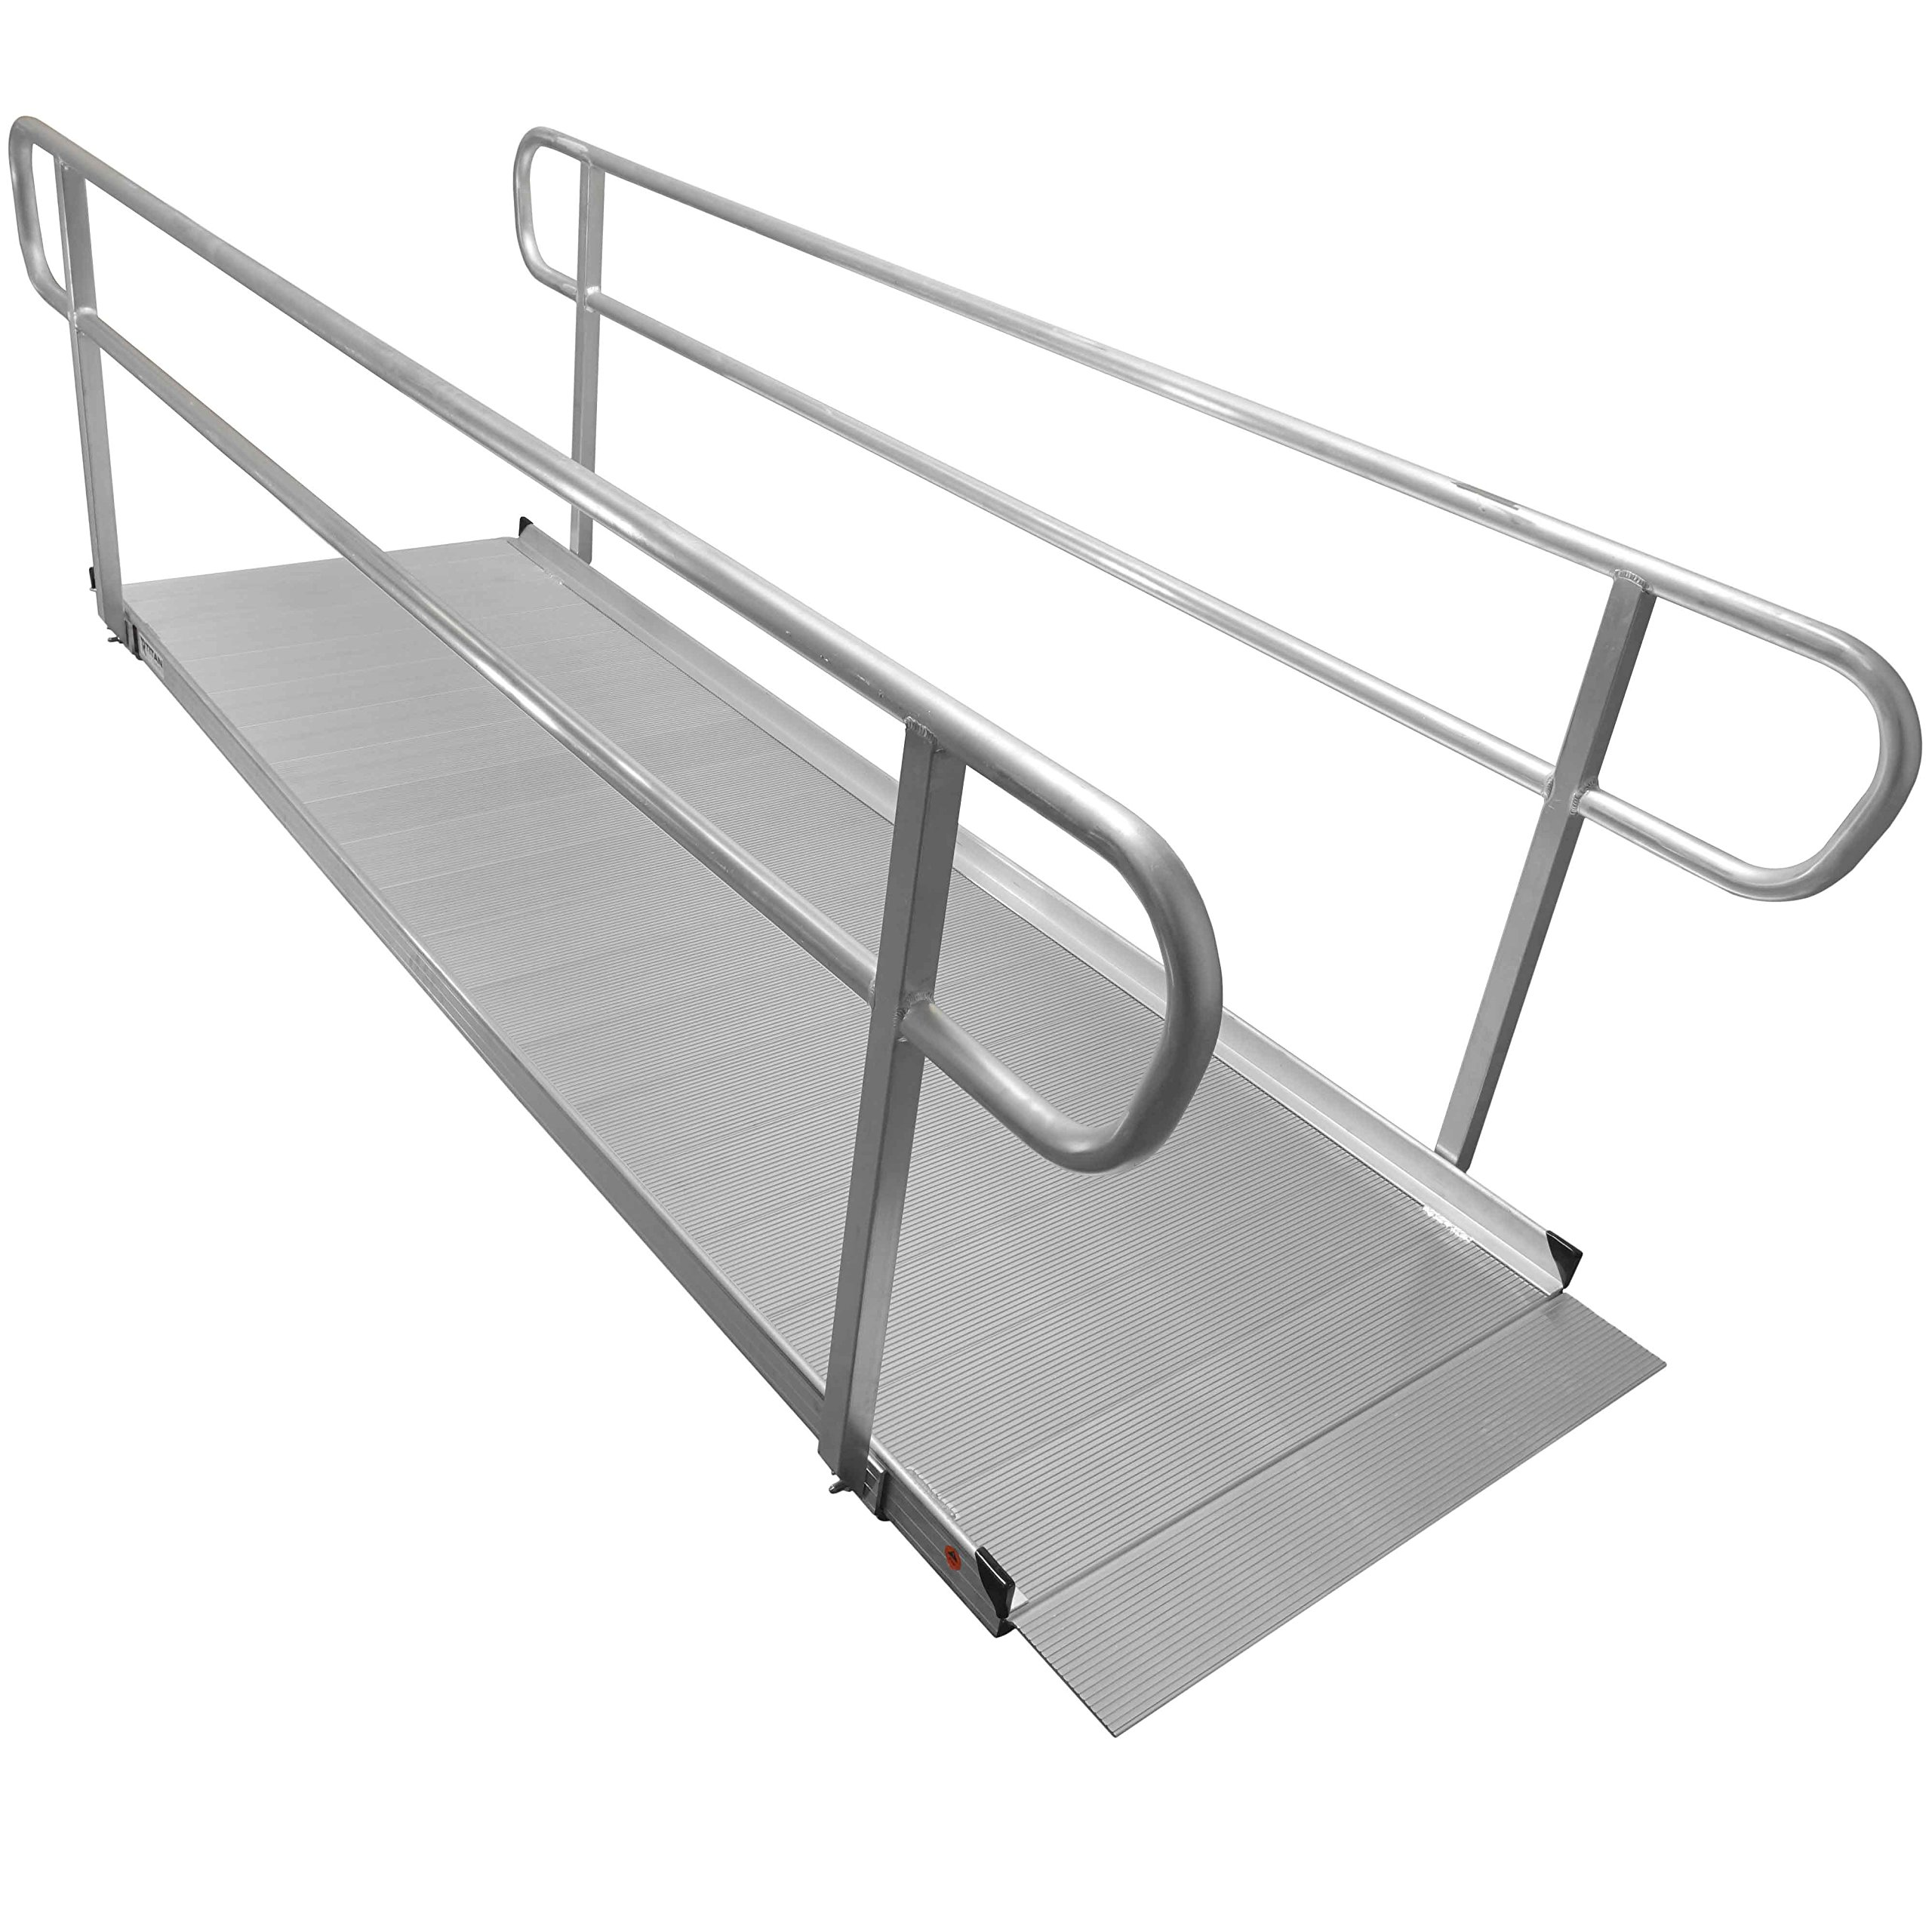 Titan Aluminum Wheelchair Entry Ramp and Handrails, Solid Surface Scooter Access by Titan Ramps